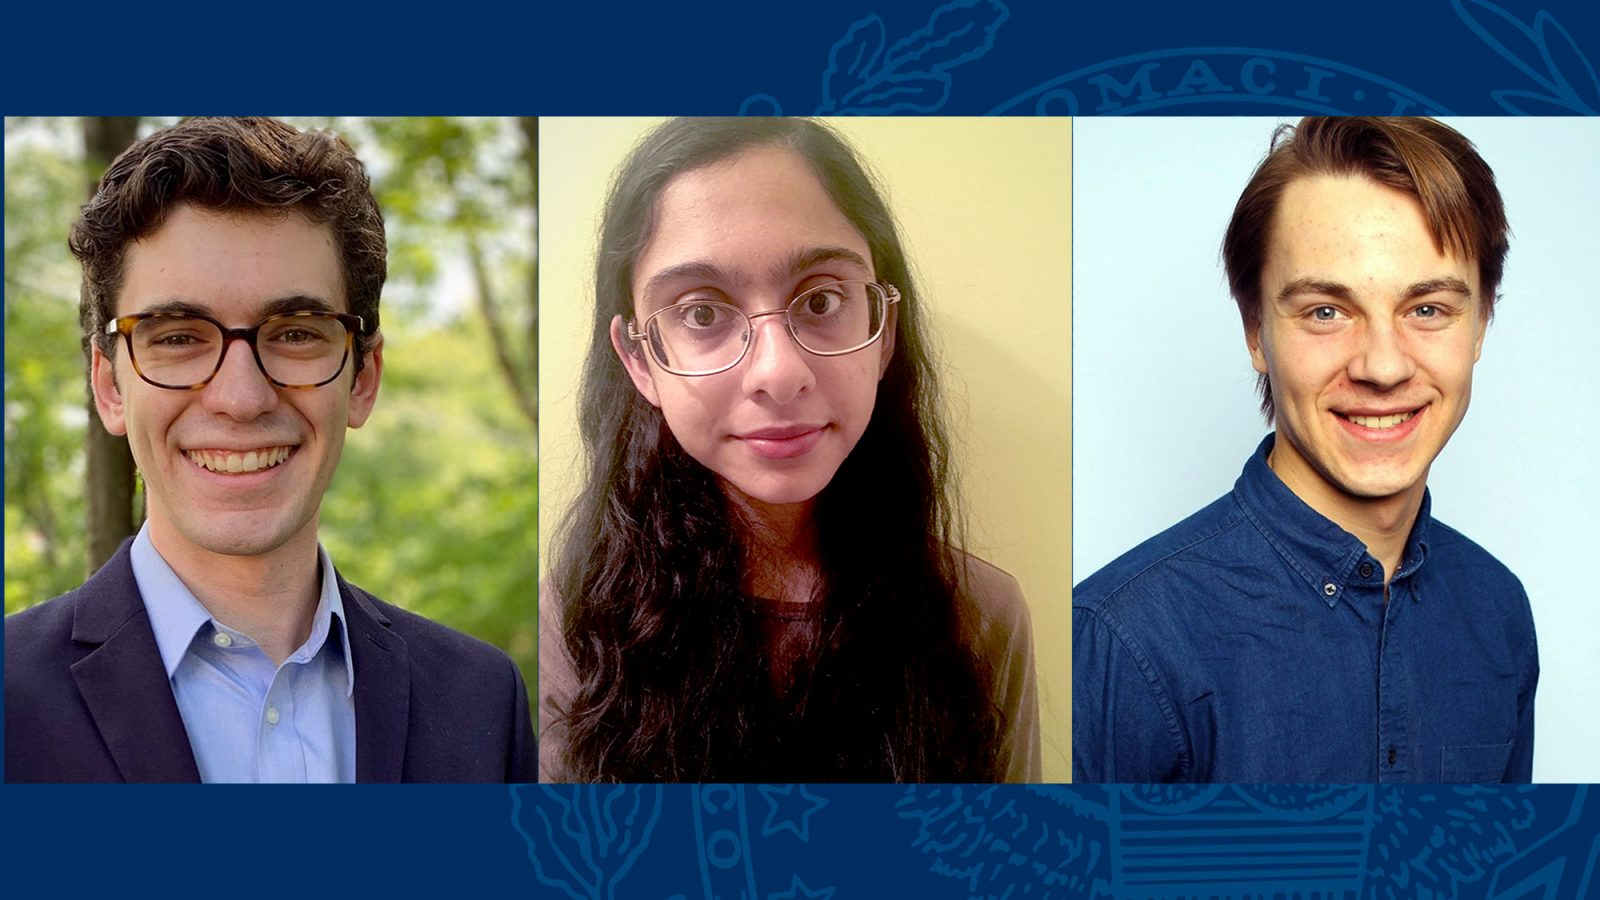 Side-by-side photos of Ben Telerski, Nikita Khatri and Carver Fitzgerald.